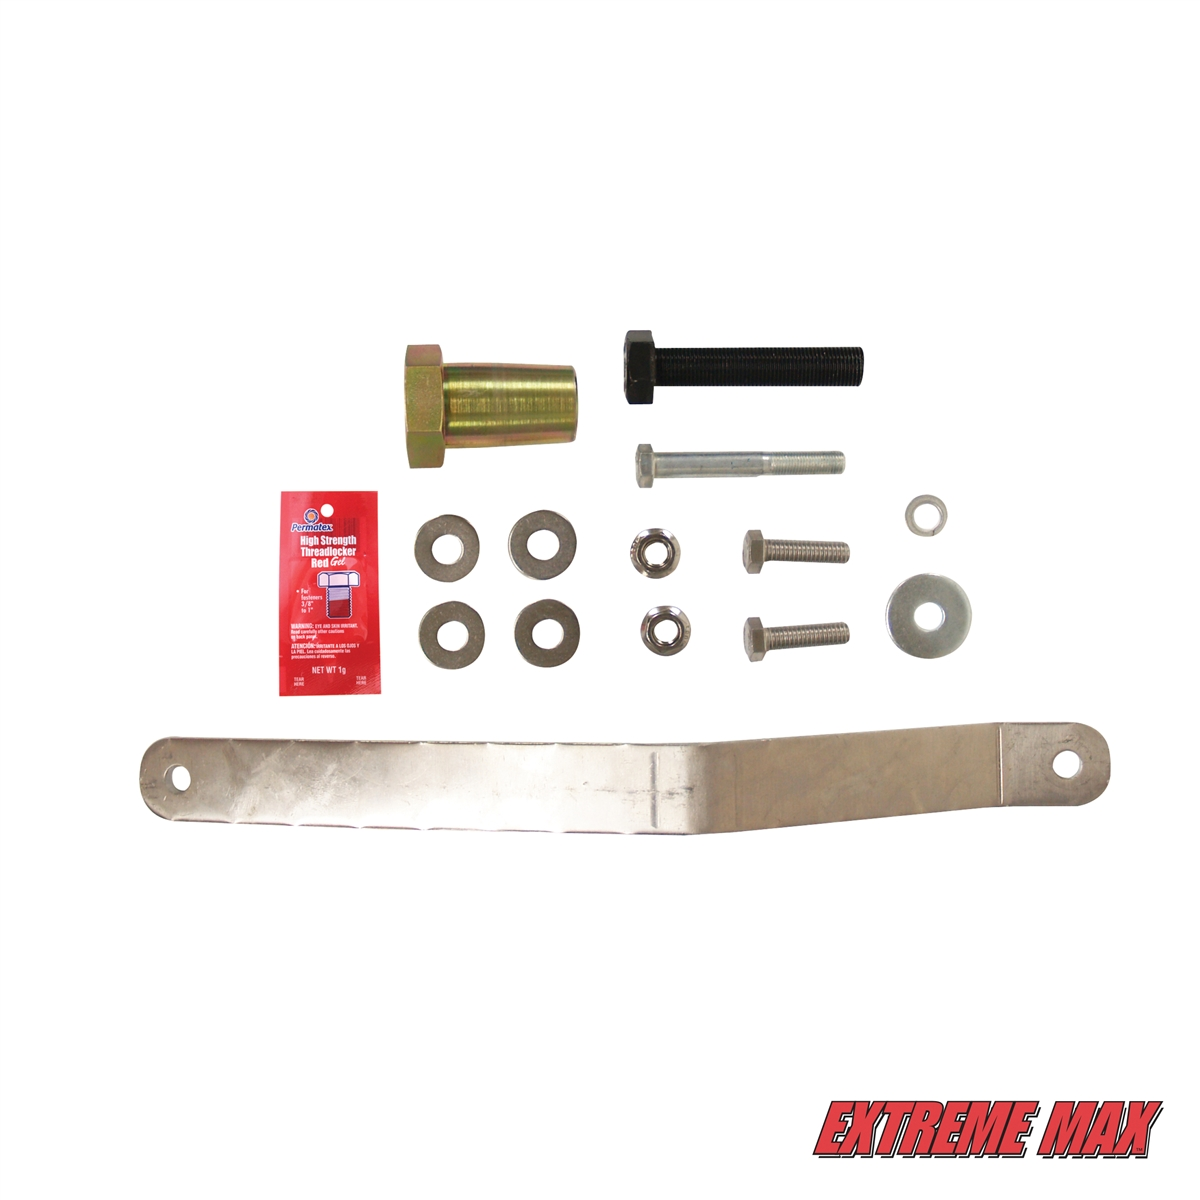 Extreme Max 3005 7207 Boat Lift Boss Installation Kit - Hewitt